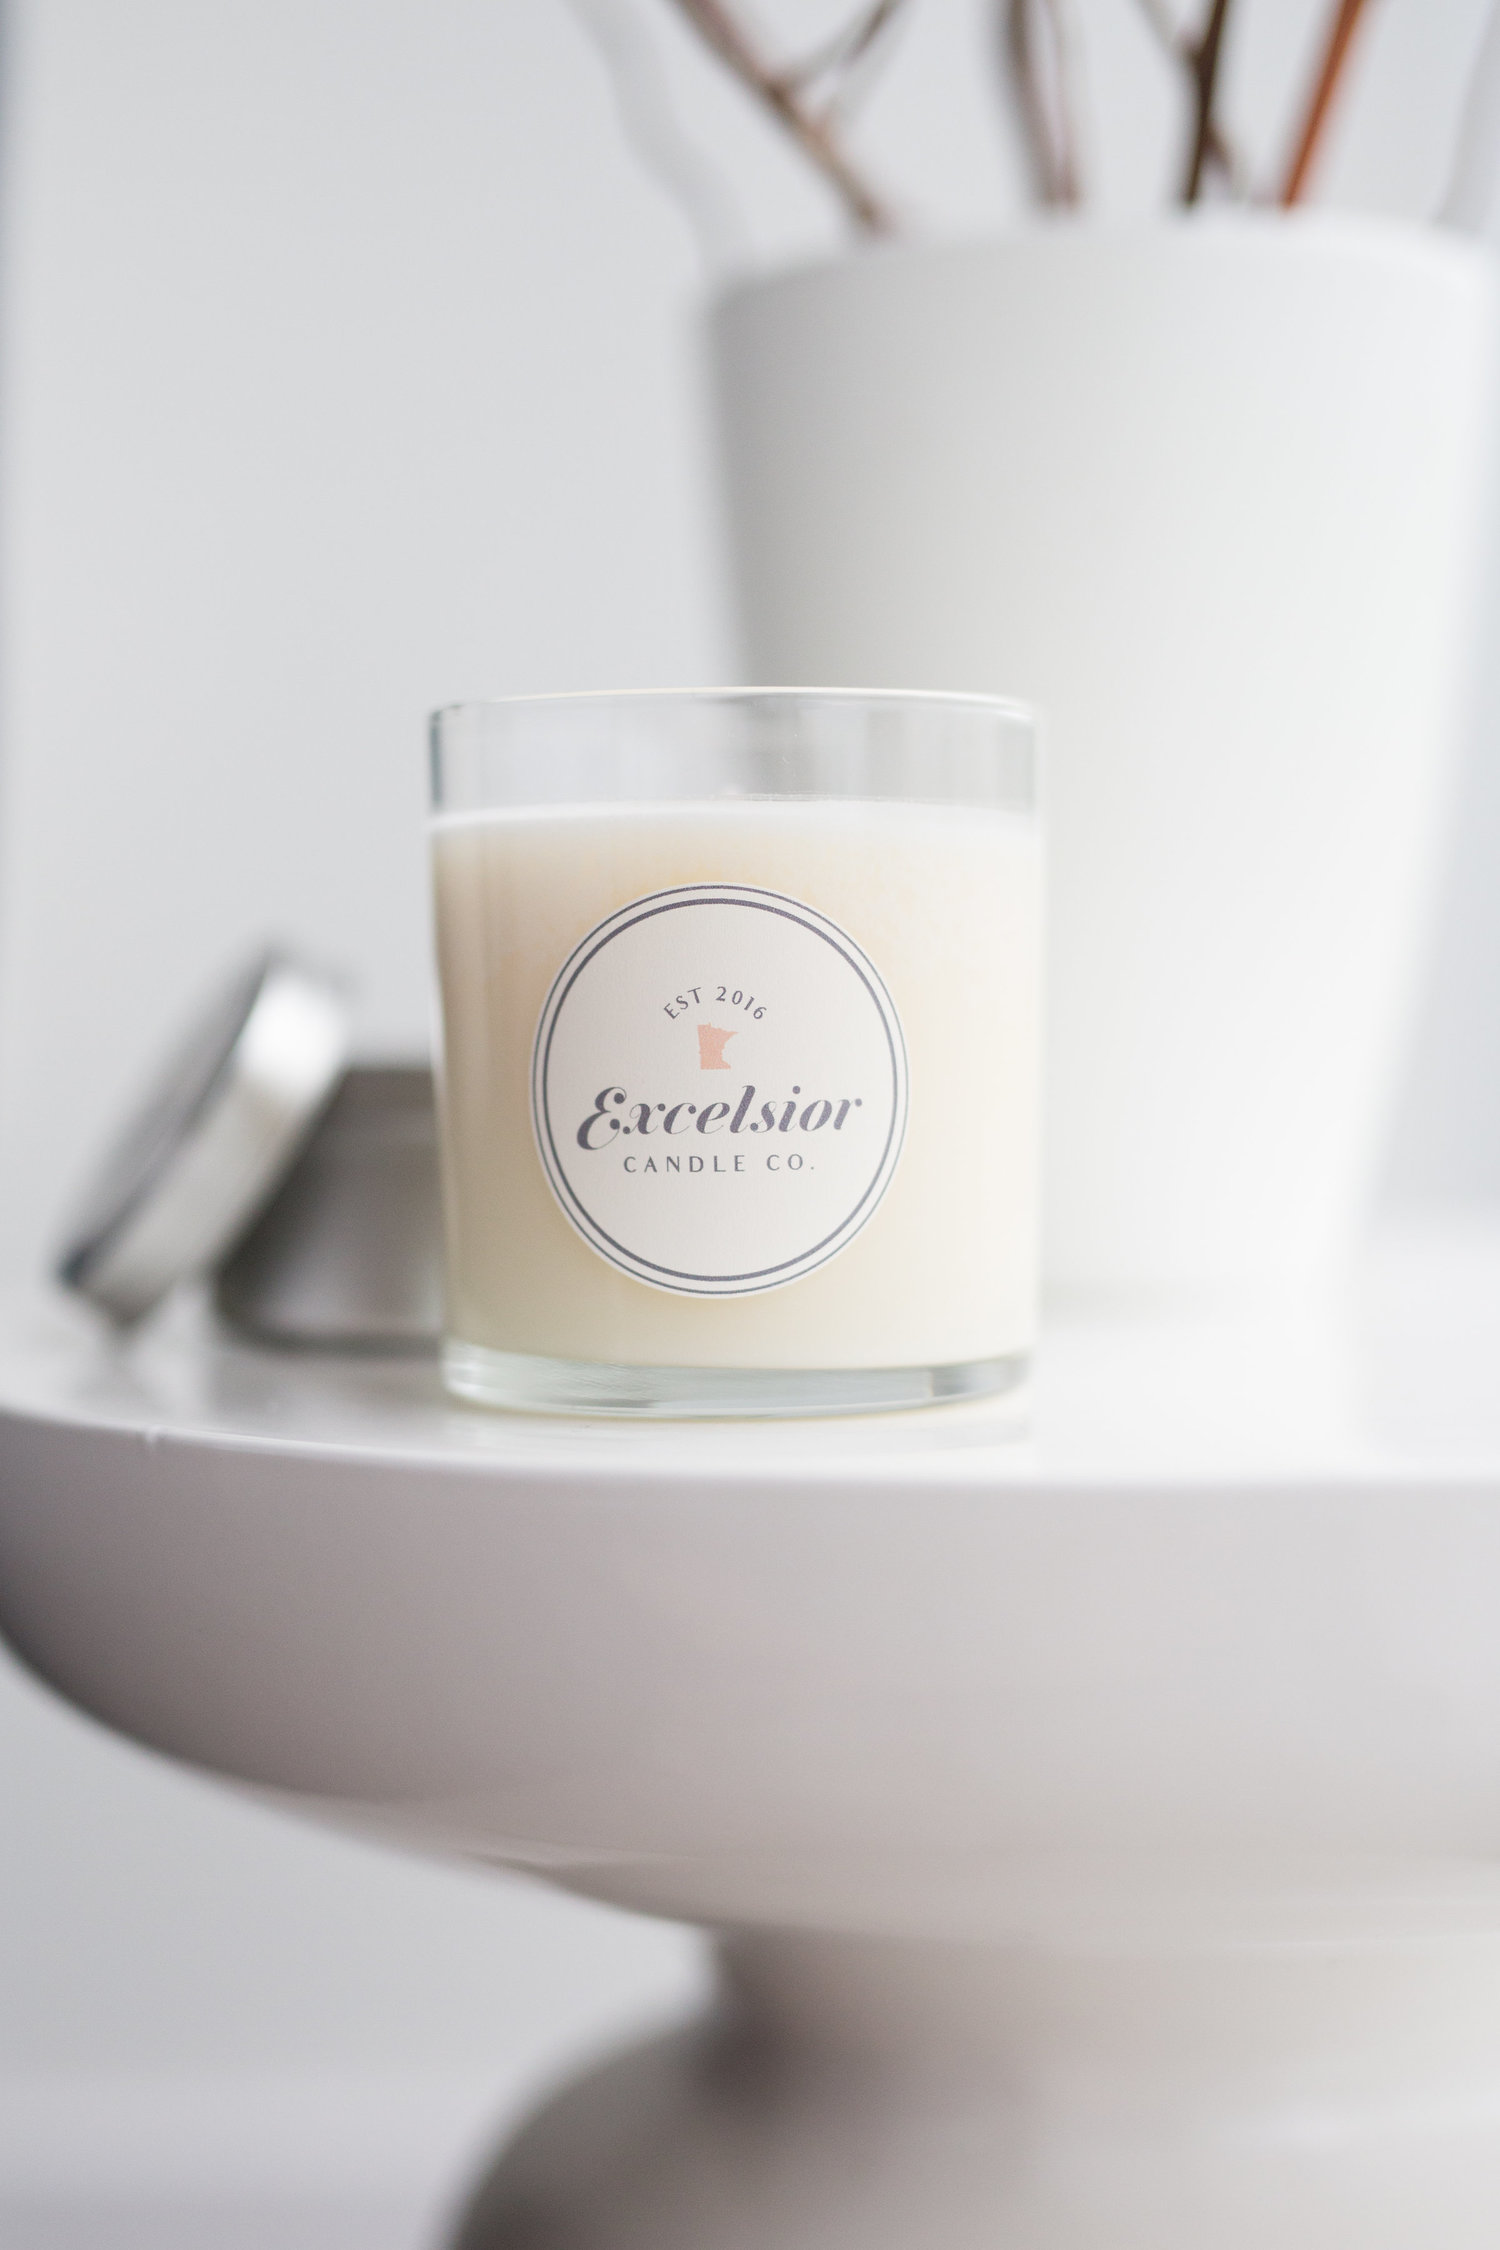 Excelcior Candle Co. candles are available in 6 oz. tins and 11 oz. glass jars. Lake Superior Mist is perfect for Minnesotans and is reminiscent of sitting by the lake. It smells of sunshine, Lake Superior, and grey pebble beaches.